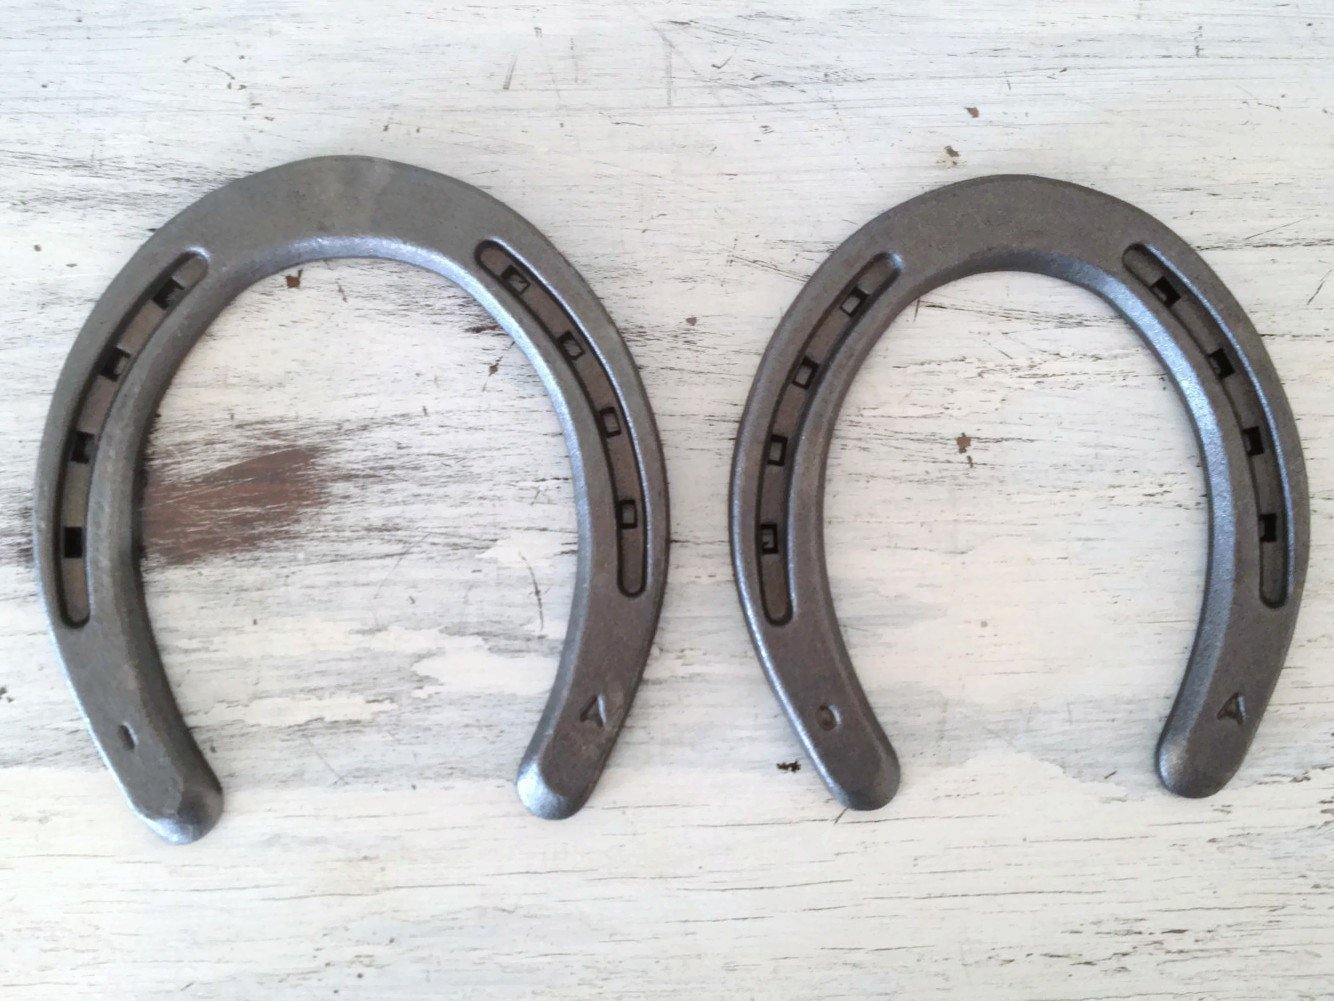 New Steel Horseshoes - Plain Shoe Size 0 - Sand Blasted - The Heritage Forge Size 0 - 40 Shoes by The Heritage Forge (Image #3)